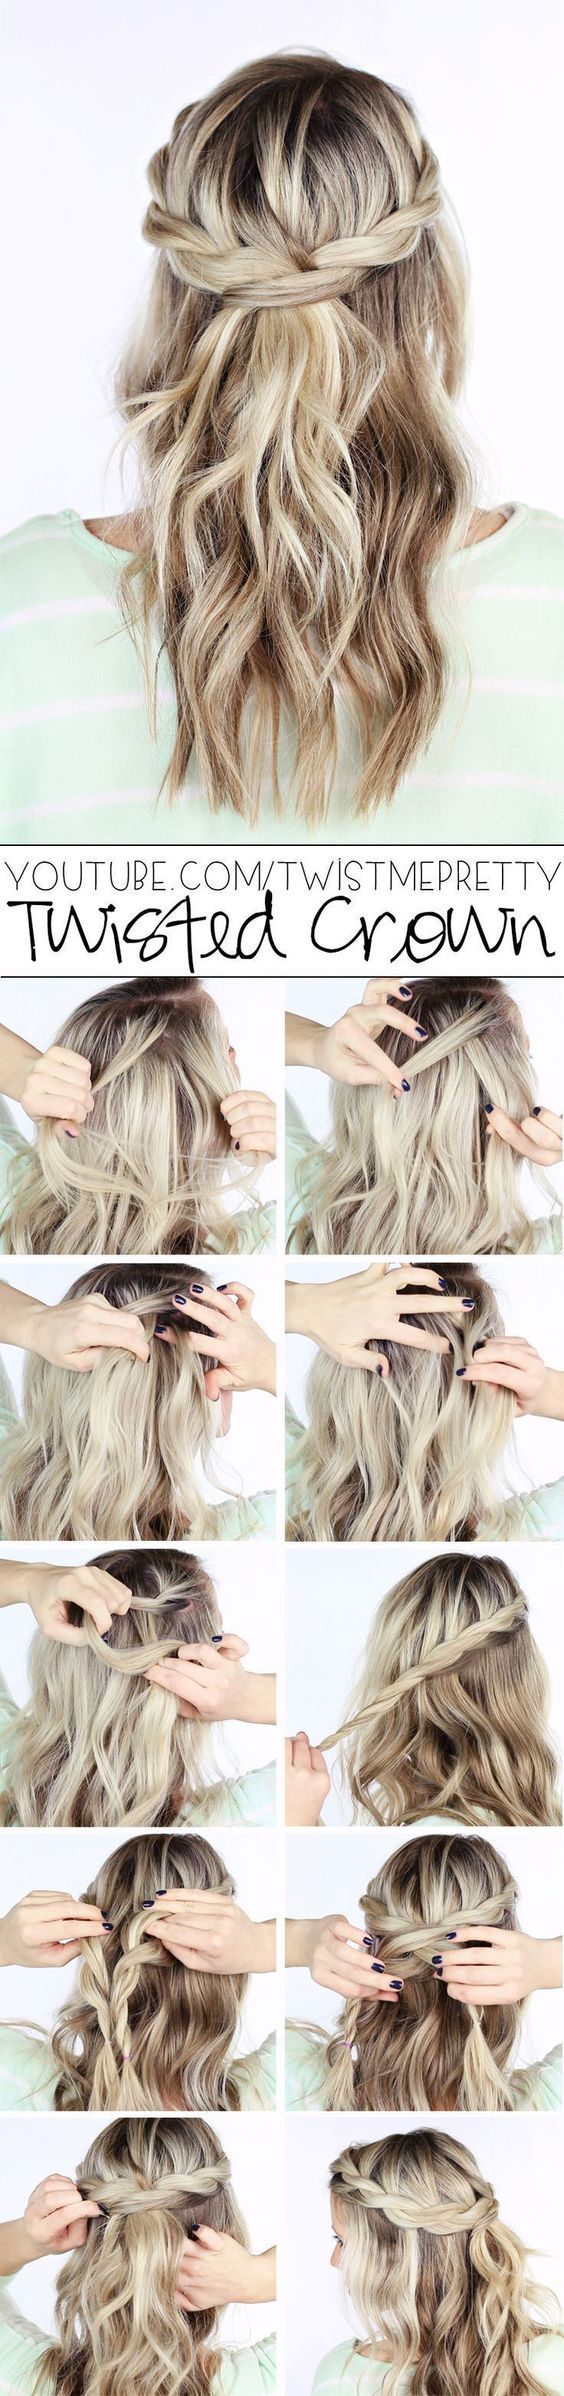 10 Easy Tutorials to Make Wedding Hair | Elegant, Prom and Wedding